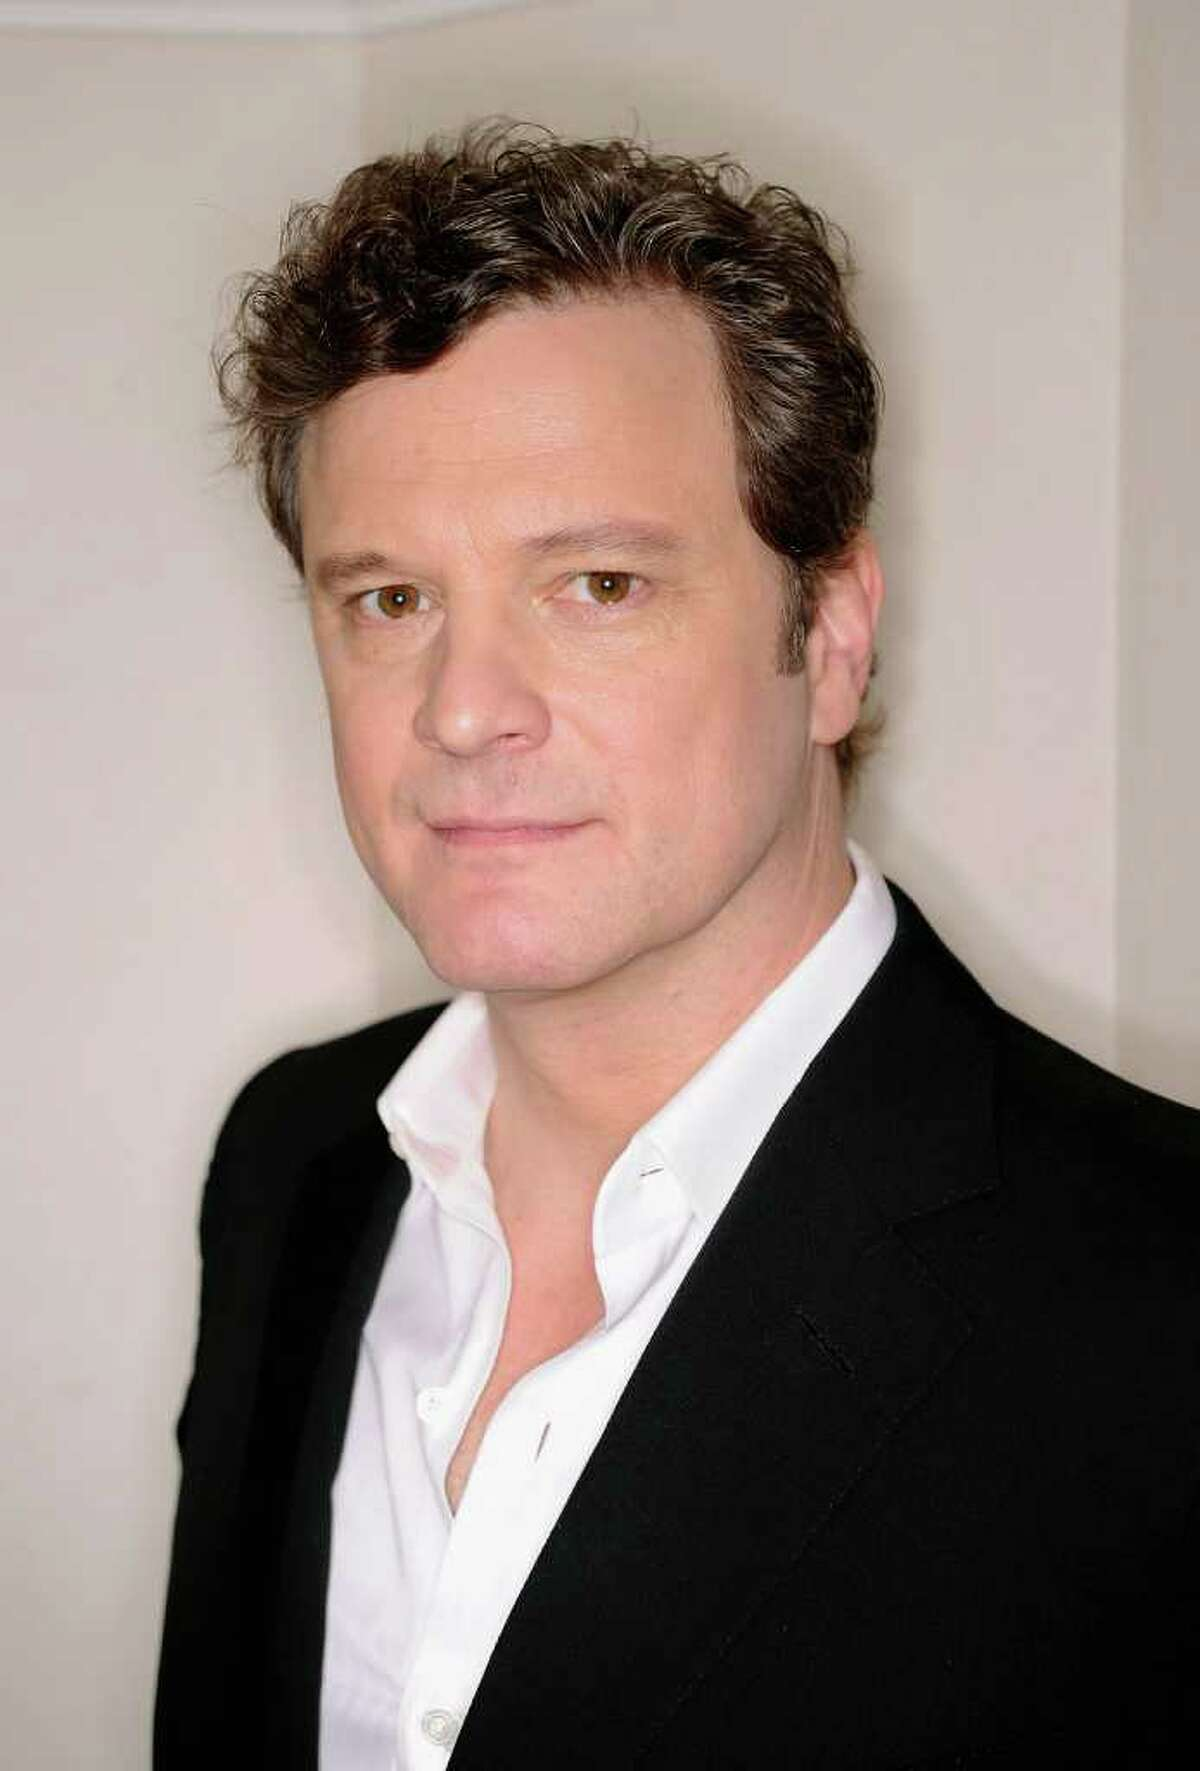 DUBAI, UNITED ARAB EMIRATES - DECEMBER 13: Actor Colin Firth during a portrait session at the 7th Annual Dubai International Film Festival held at the Madinat Jumeriah Complex on December 13, 2010 in Dubai, United Arab Emirates. (Photo by Andrew H. Walker/Getty Images For Dubai International Film Festival) *** Local Caption *** Colin Firth